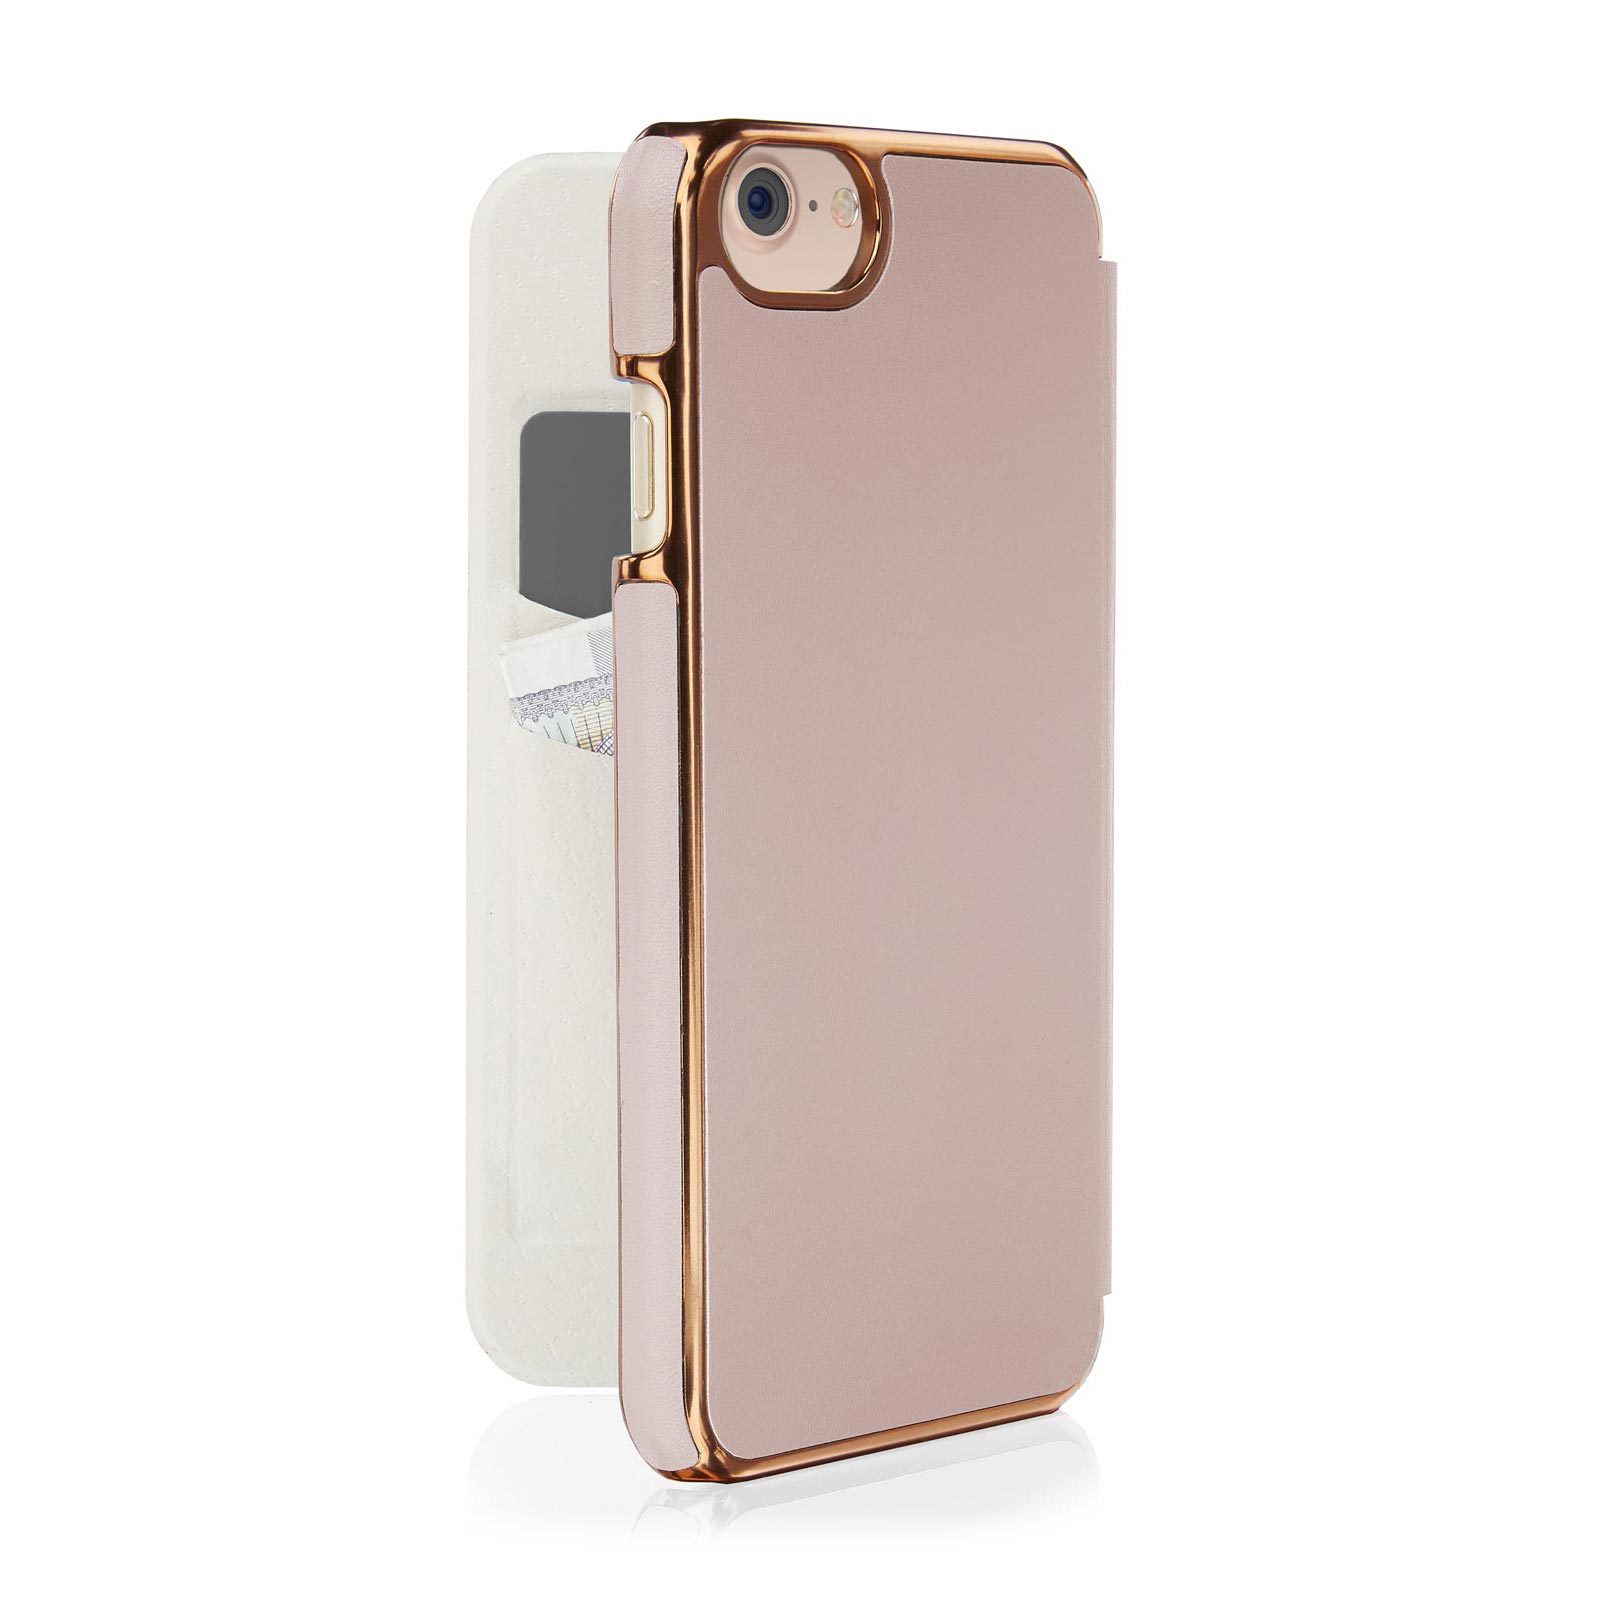 best service e8e02 cab3a iPhone 8 Slim Wallet Case - Dusty Pink (Also Fits iPhone 6/6S/7)